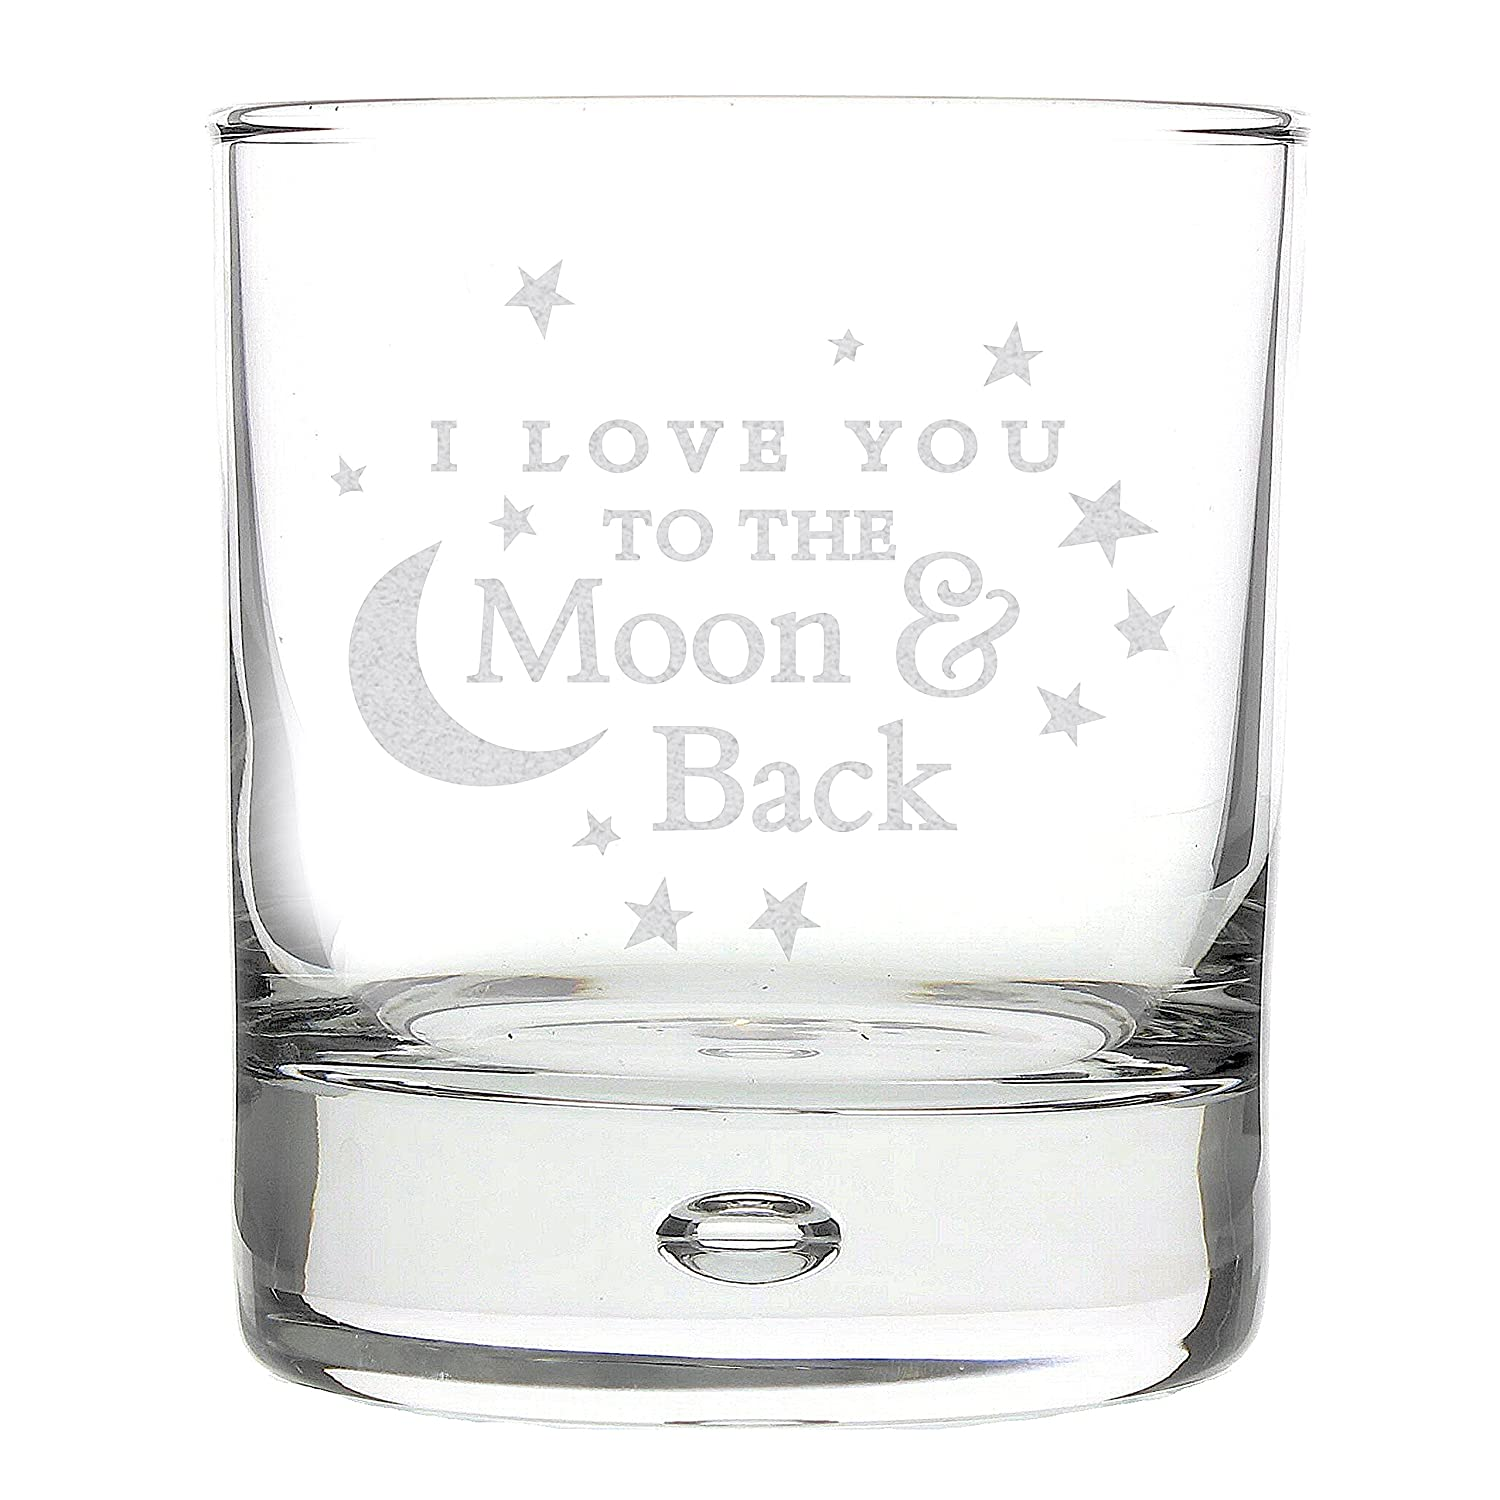 I LOVE YOU TO THE MOON AND BACK Bubble WHISKY GLASS for my Him Her Men Women  Wife Husband Friend Novelty Idea Gifts Presents Valentines Day Birthday ... 18e575ab6